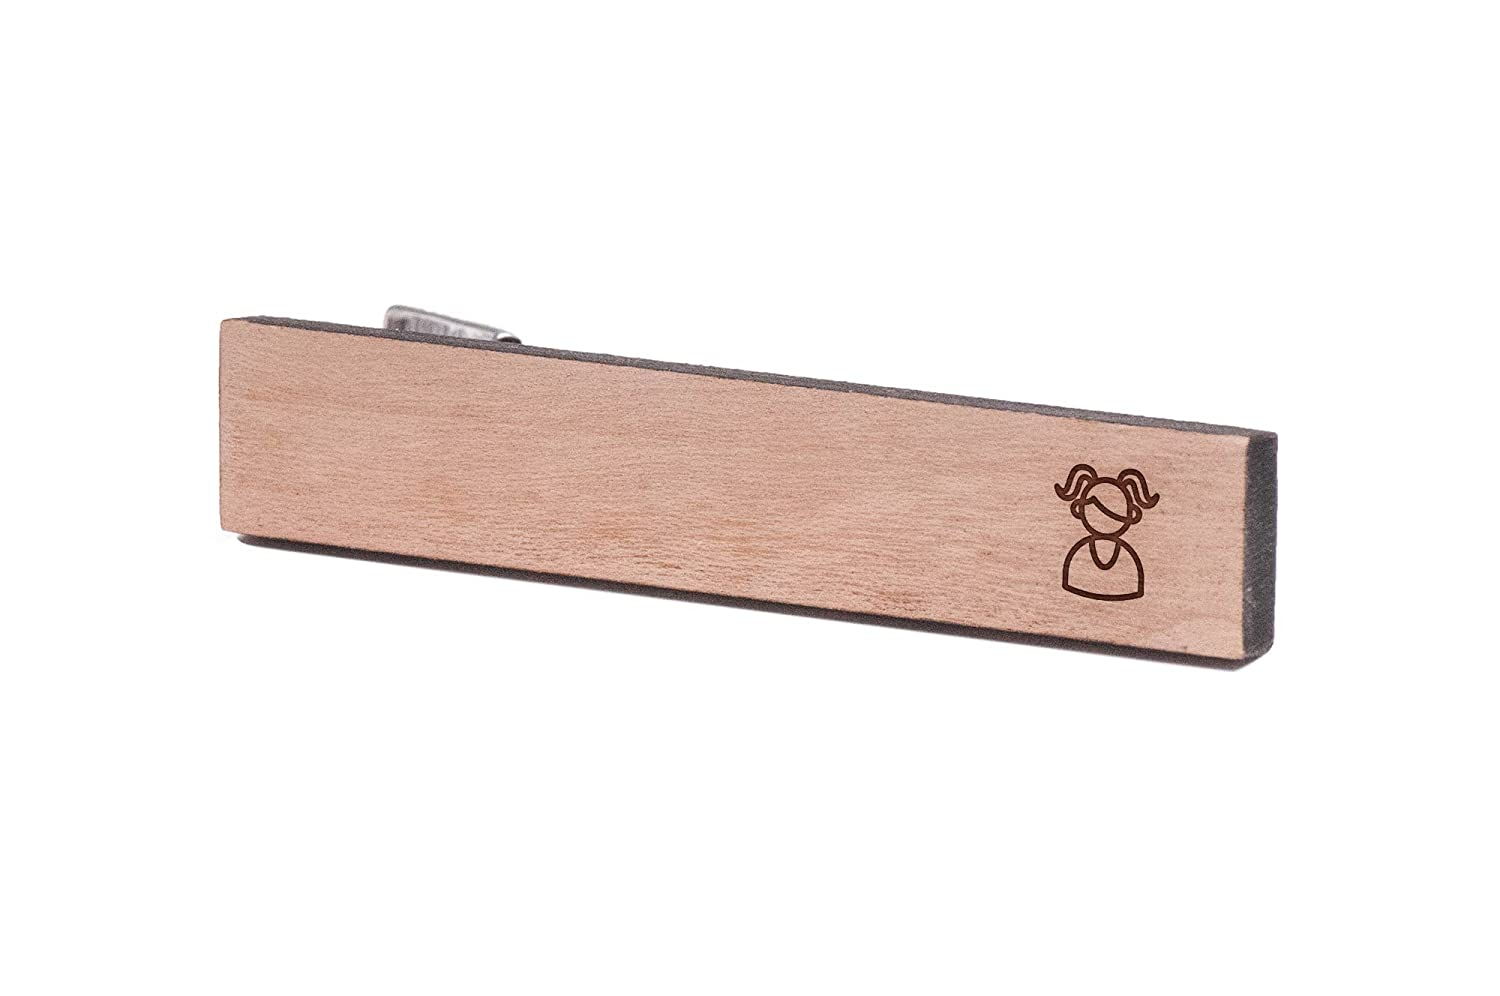 Cherry Wood Tie Bar Engraved in The USA Wooden Accessories Company Wooden Tie Clips with Laser Engraved Pig Tails Design